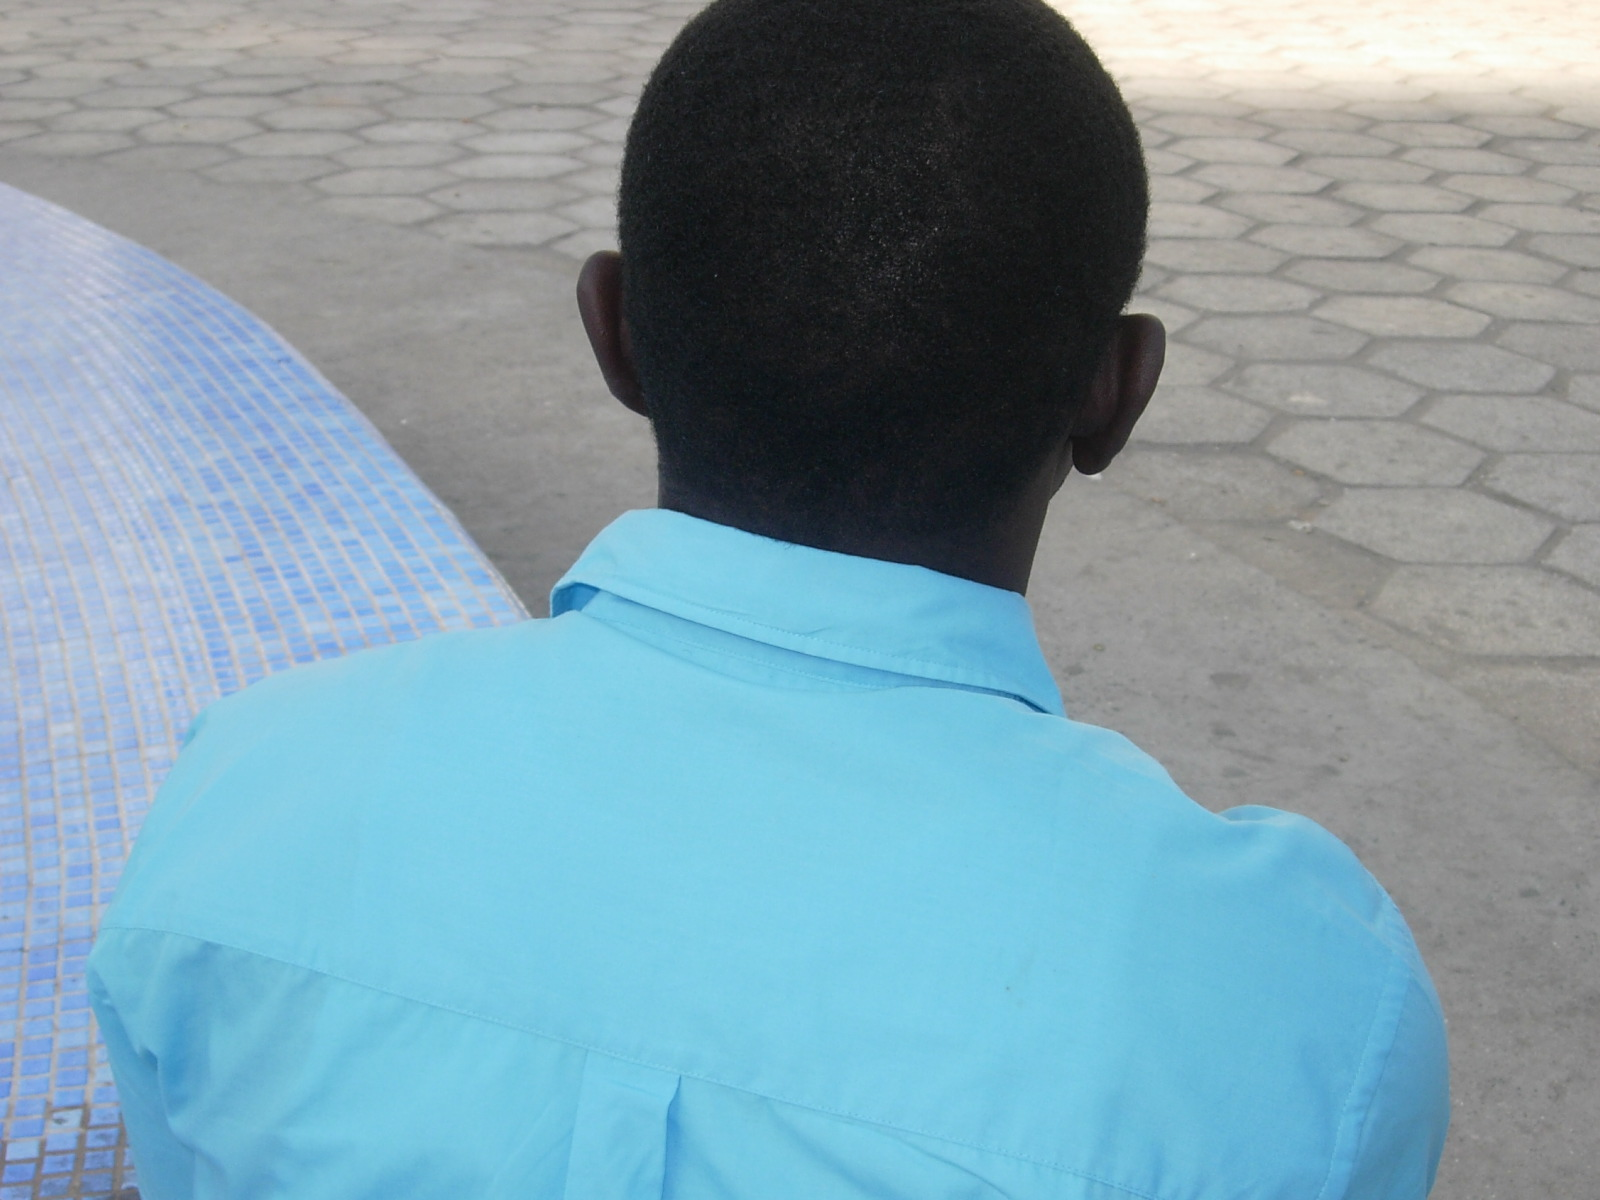 'Lamine', whose six-year-old daughter was raped while in the toilets at school in the Senegalese capital Dakar